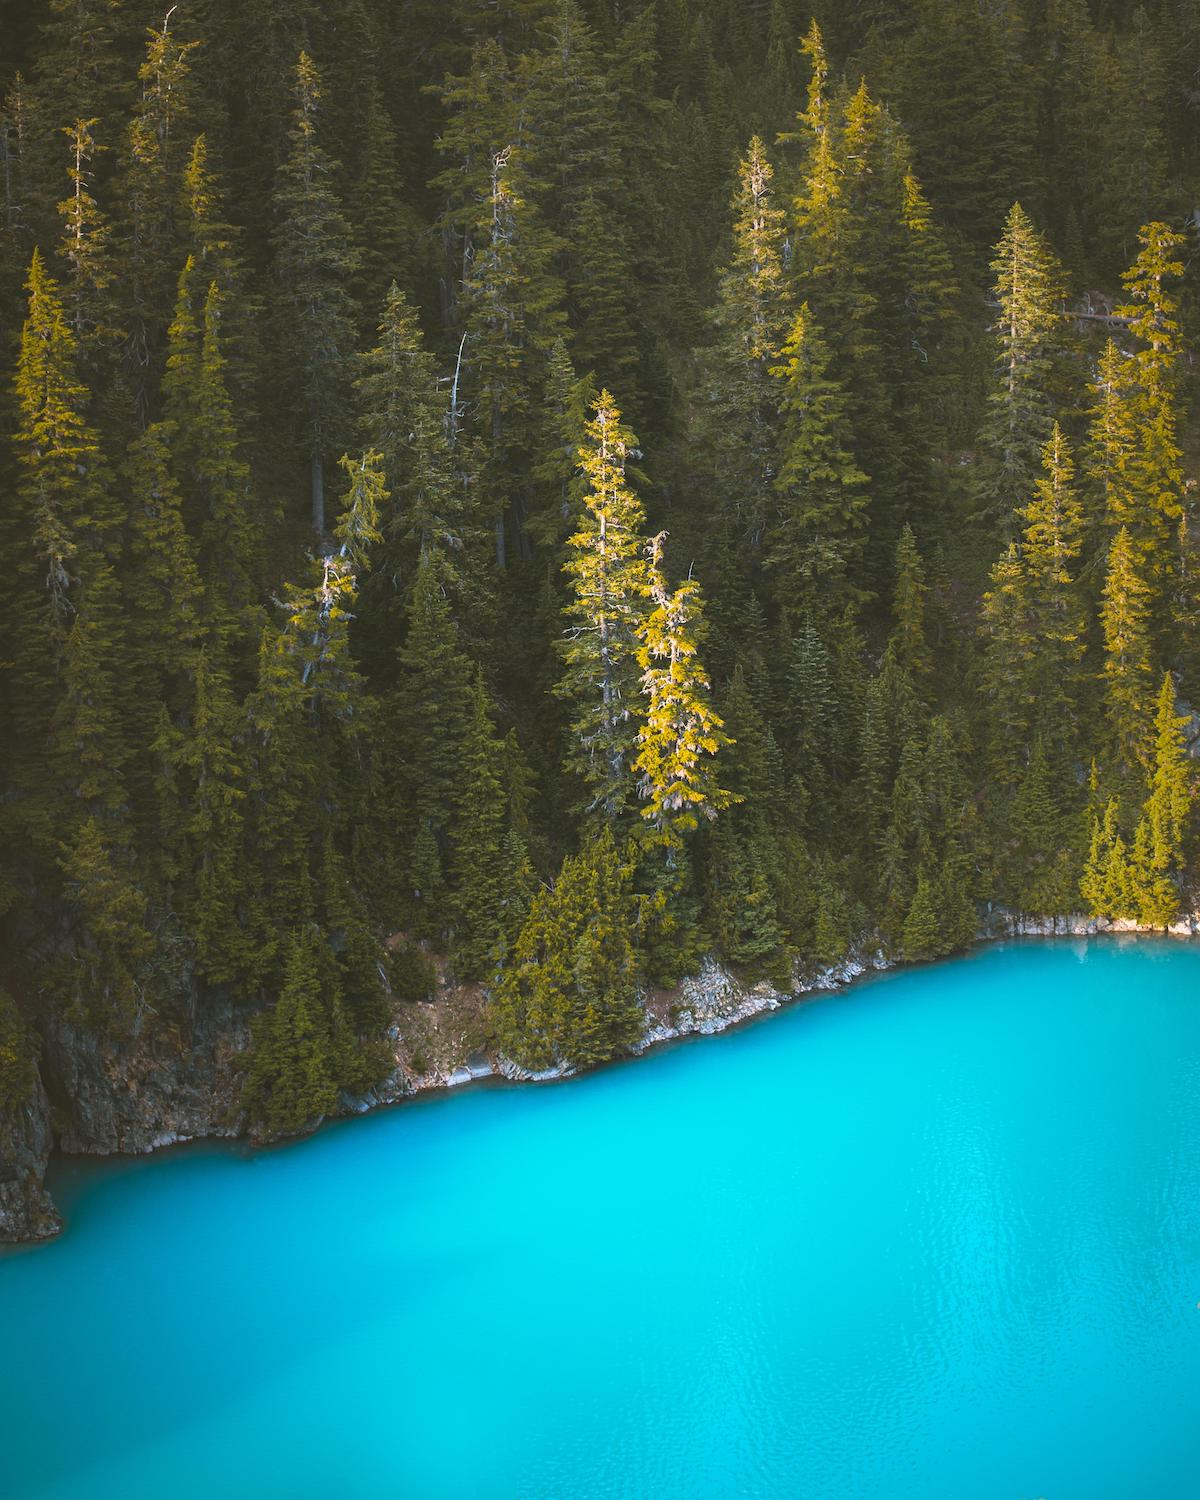 Diablo Lake Photos by Nathaniel Wise